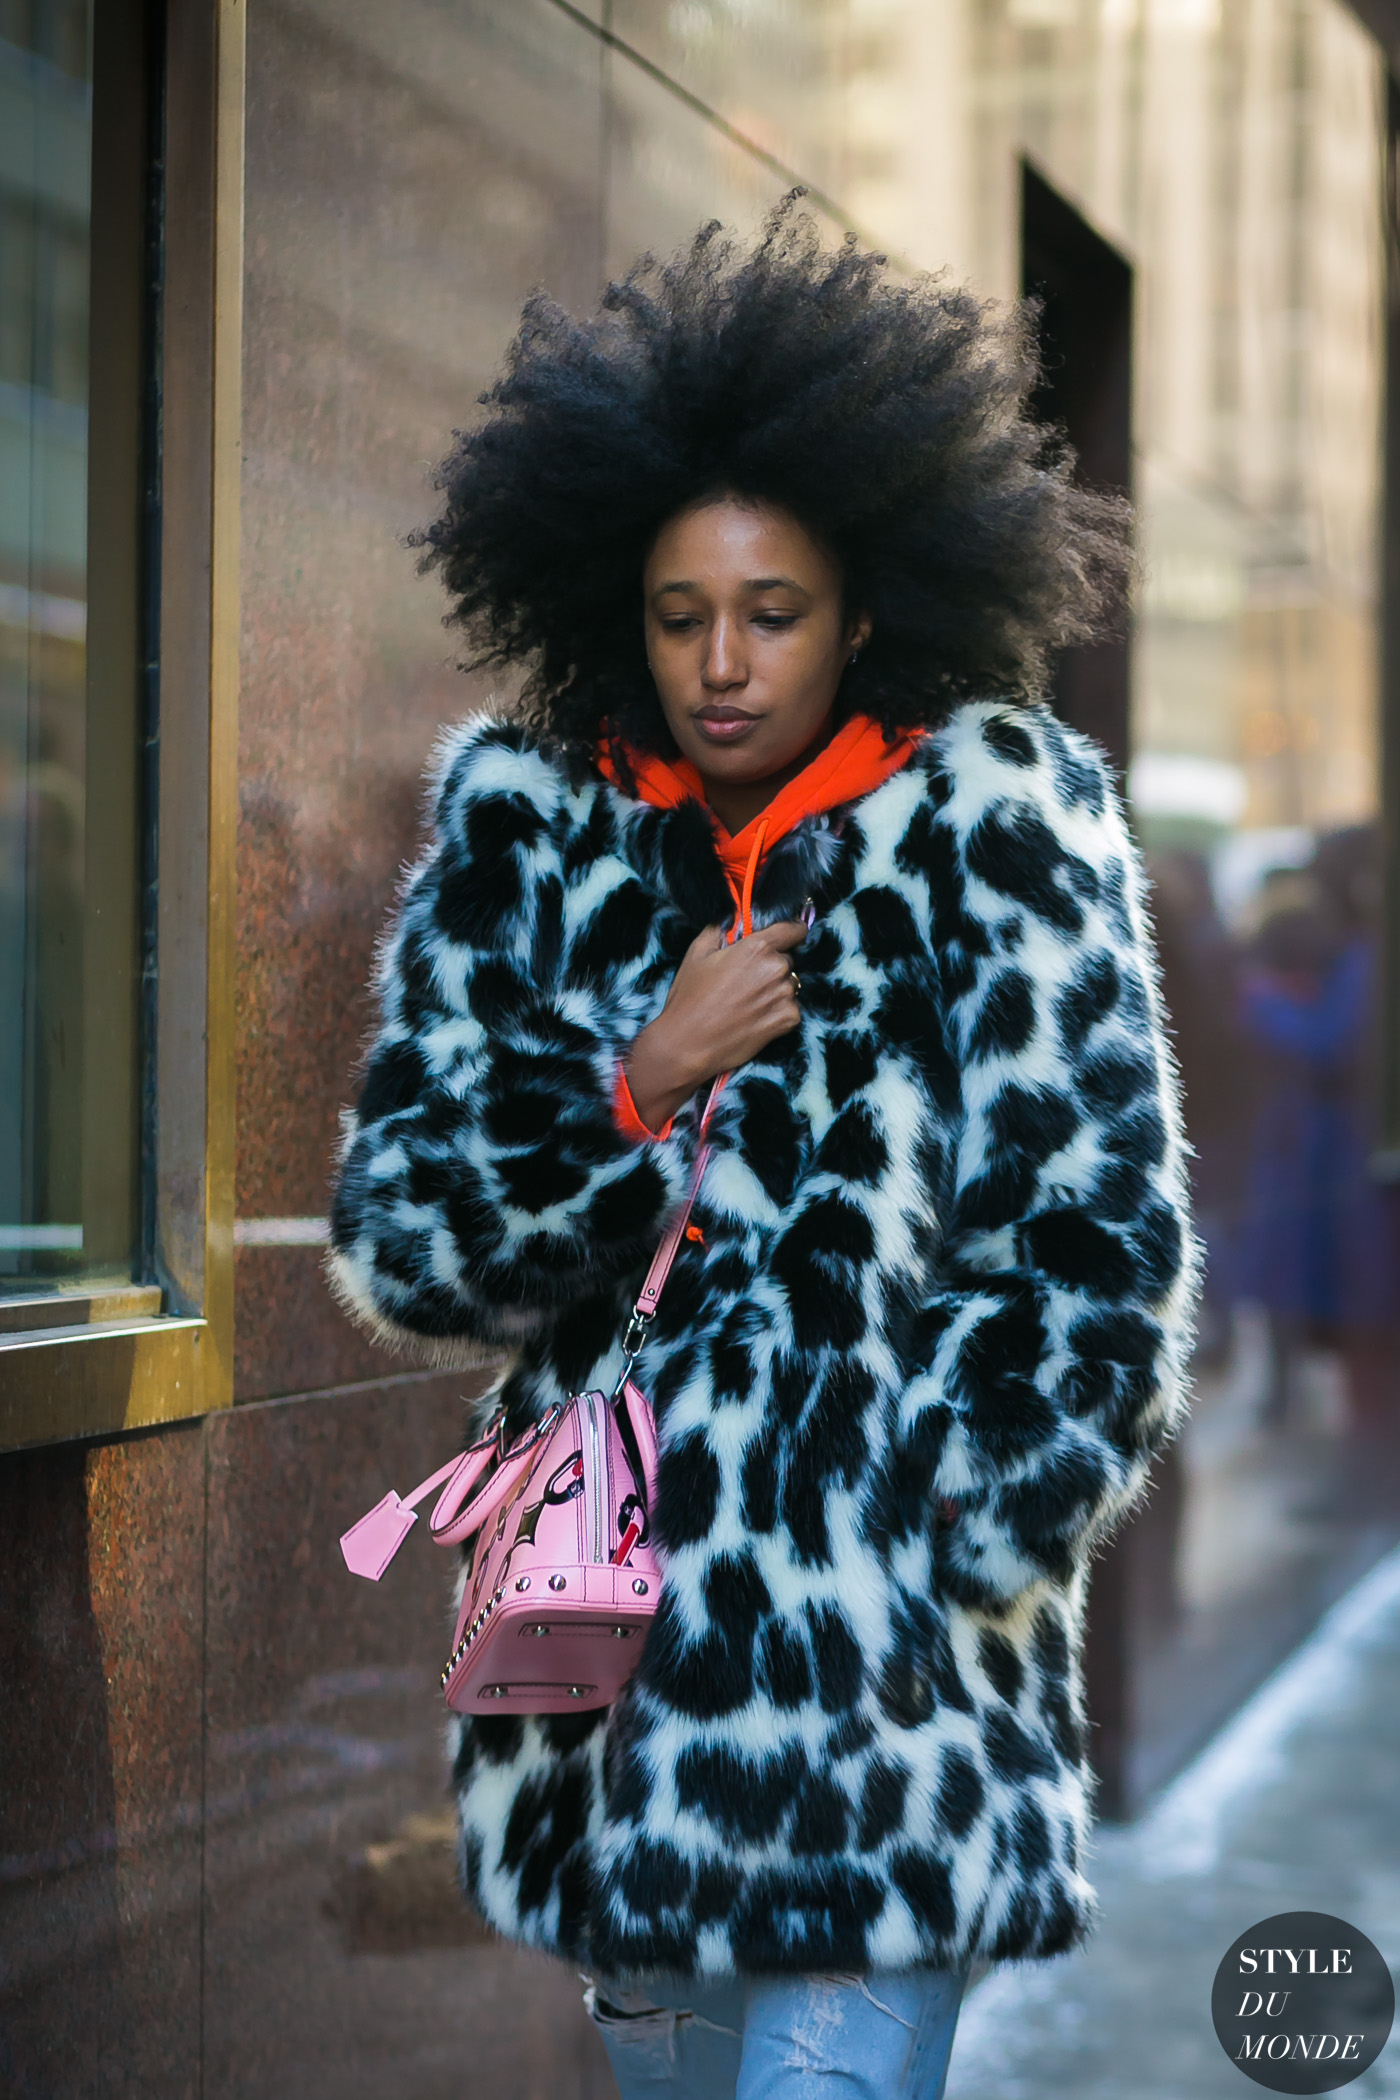 Julia Sarr-Jamois by STYLEDUMONDE Street Style Fashion Photography